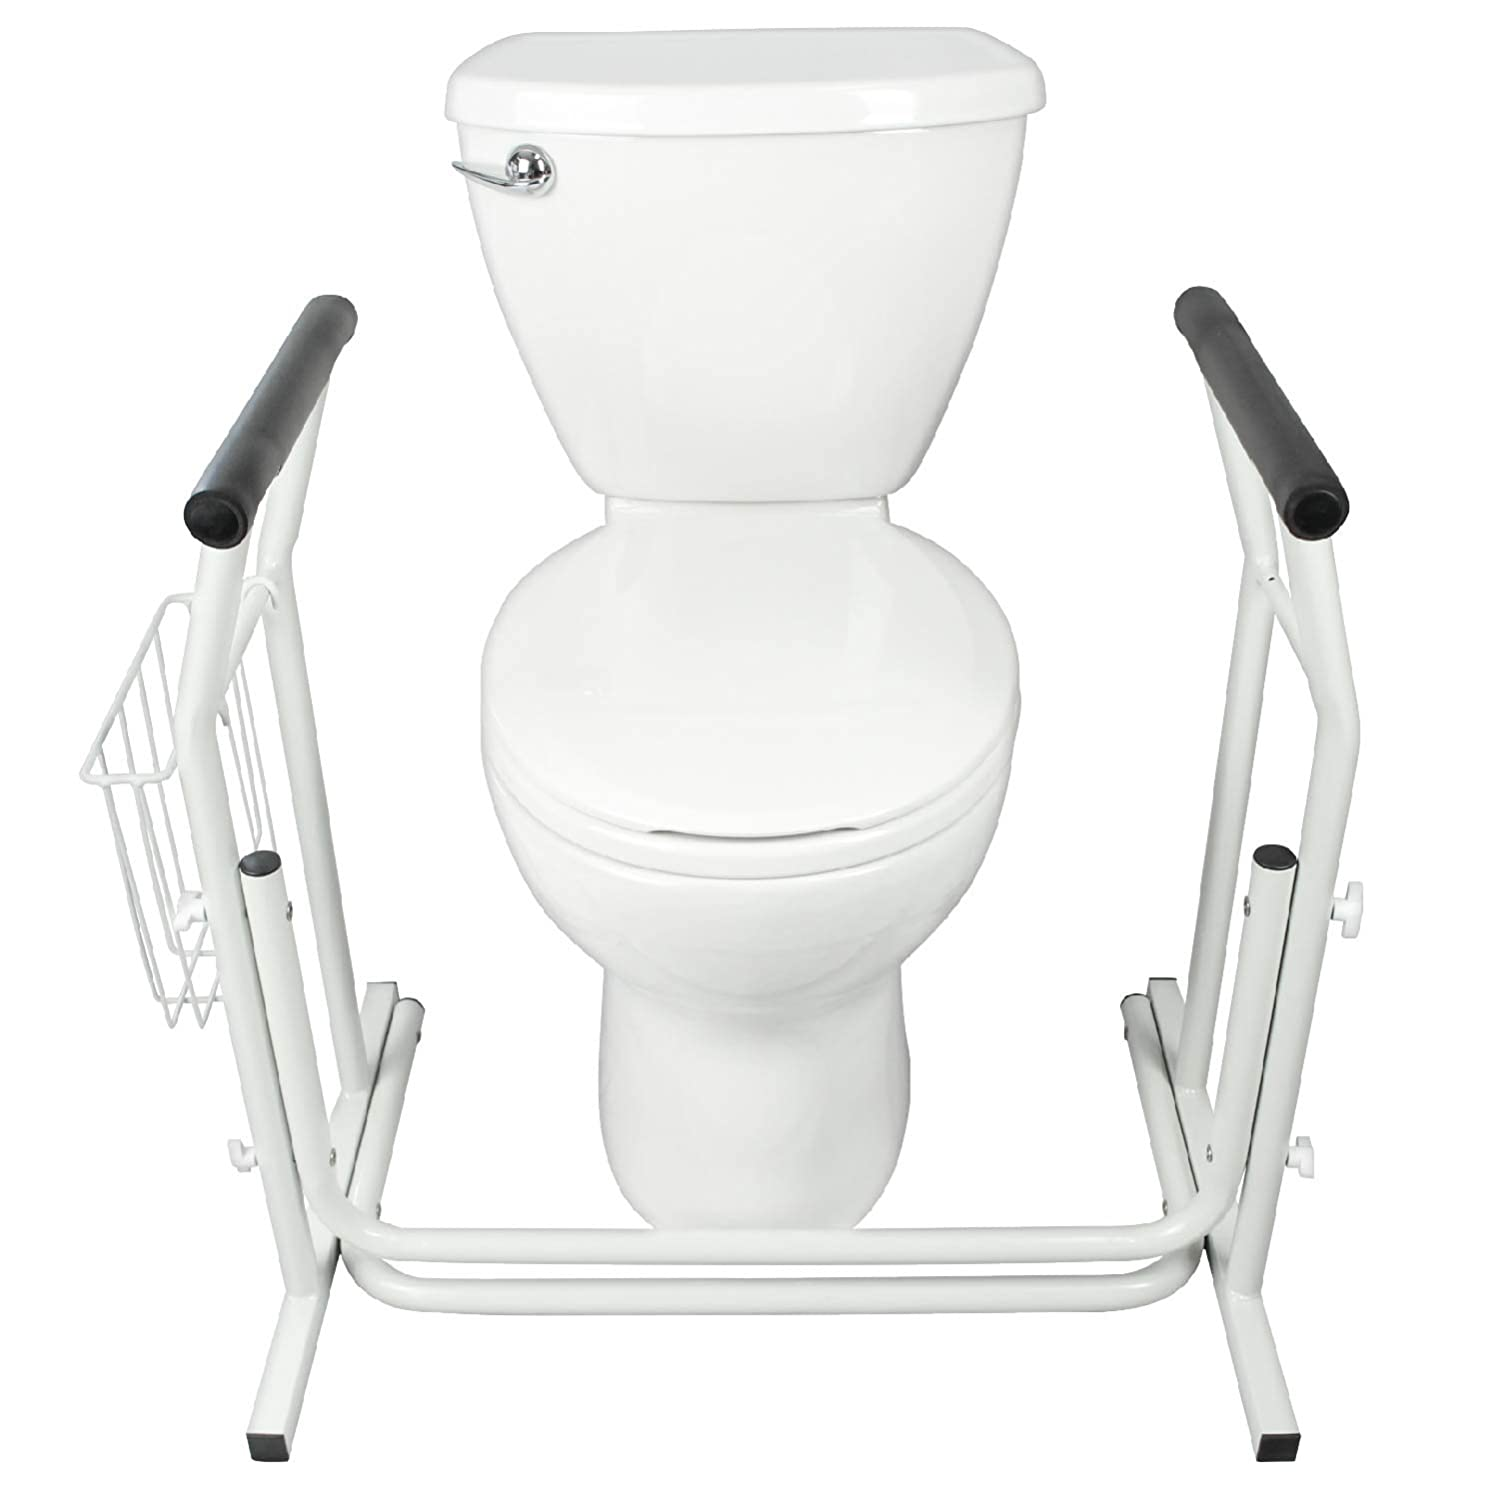 Amazon.com: Stand Alone Toilet Rail by Vive - Medical Bathroom ...